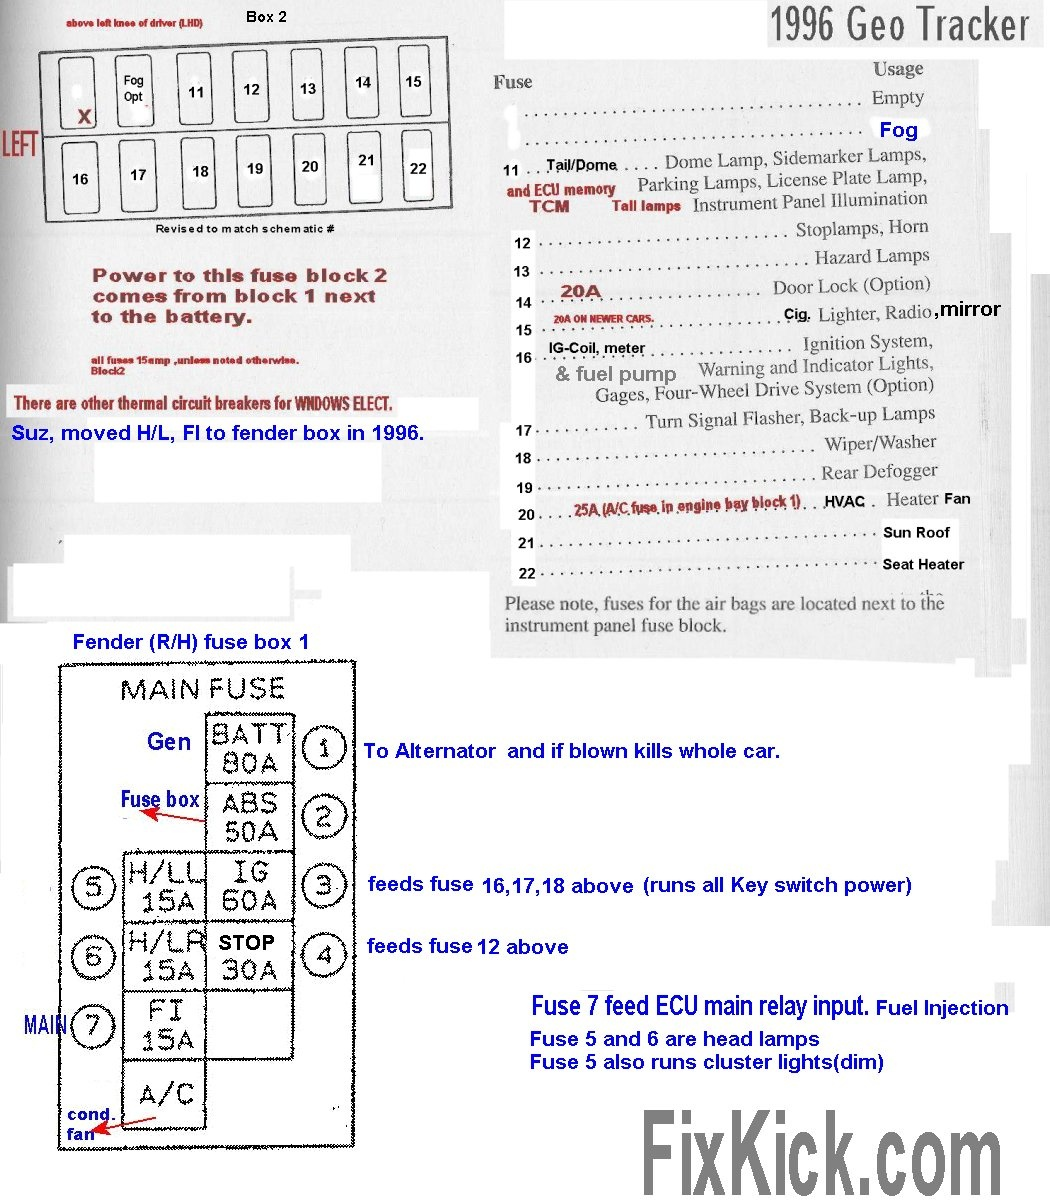 Chevy Ecm Wiring Diagram on chevy ecm troubleshooting, chevy clutch diagram, chevy horn diagram, chevy ecm fuse location, chevy ecm repair, chevy ignition diagram, chevy ecm flow diagram, chevy lifters diagram, chevy transmission diagram, chevy engine diagram, chevy fuel system diagram, chevy fuel injection diagram, chevy control module diagram, chevy ecm distributor,